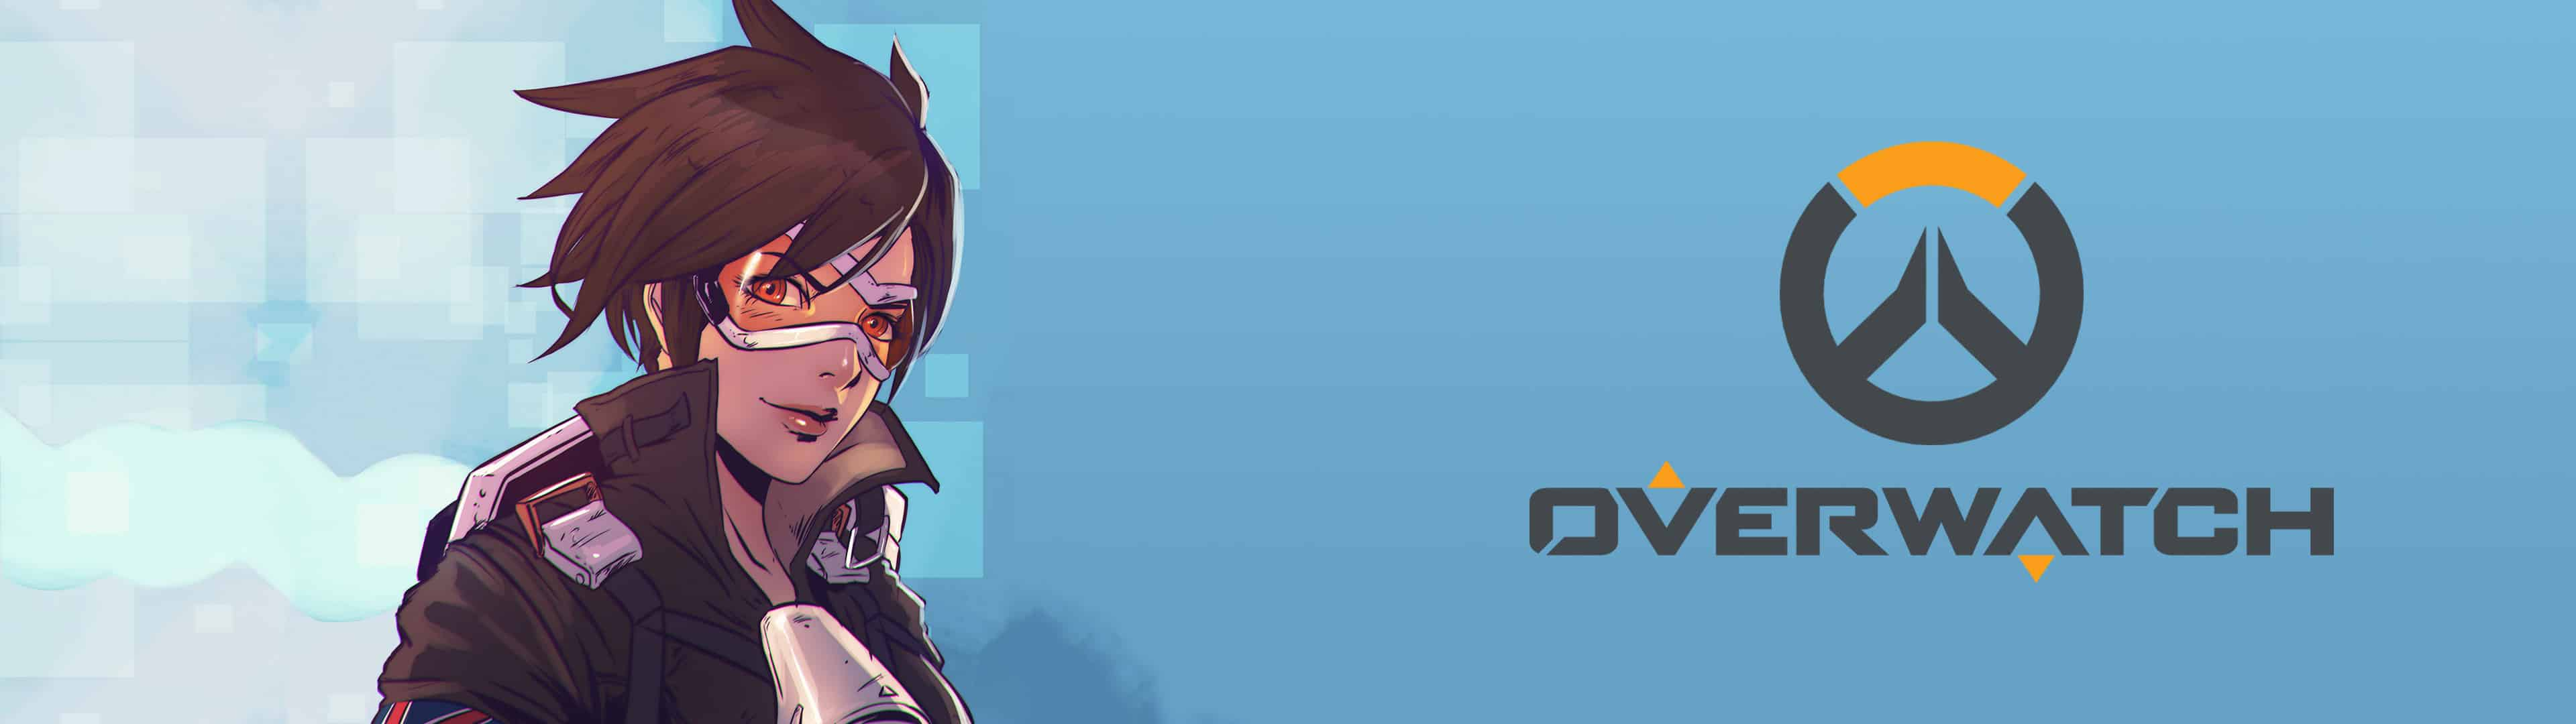 overwatch tracer dual monitor wallpaper